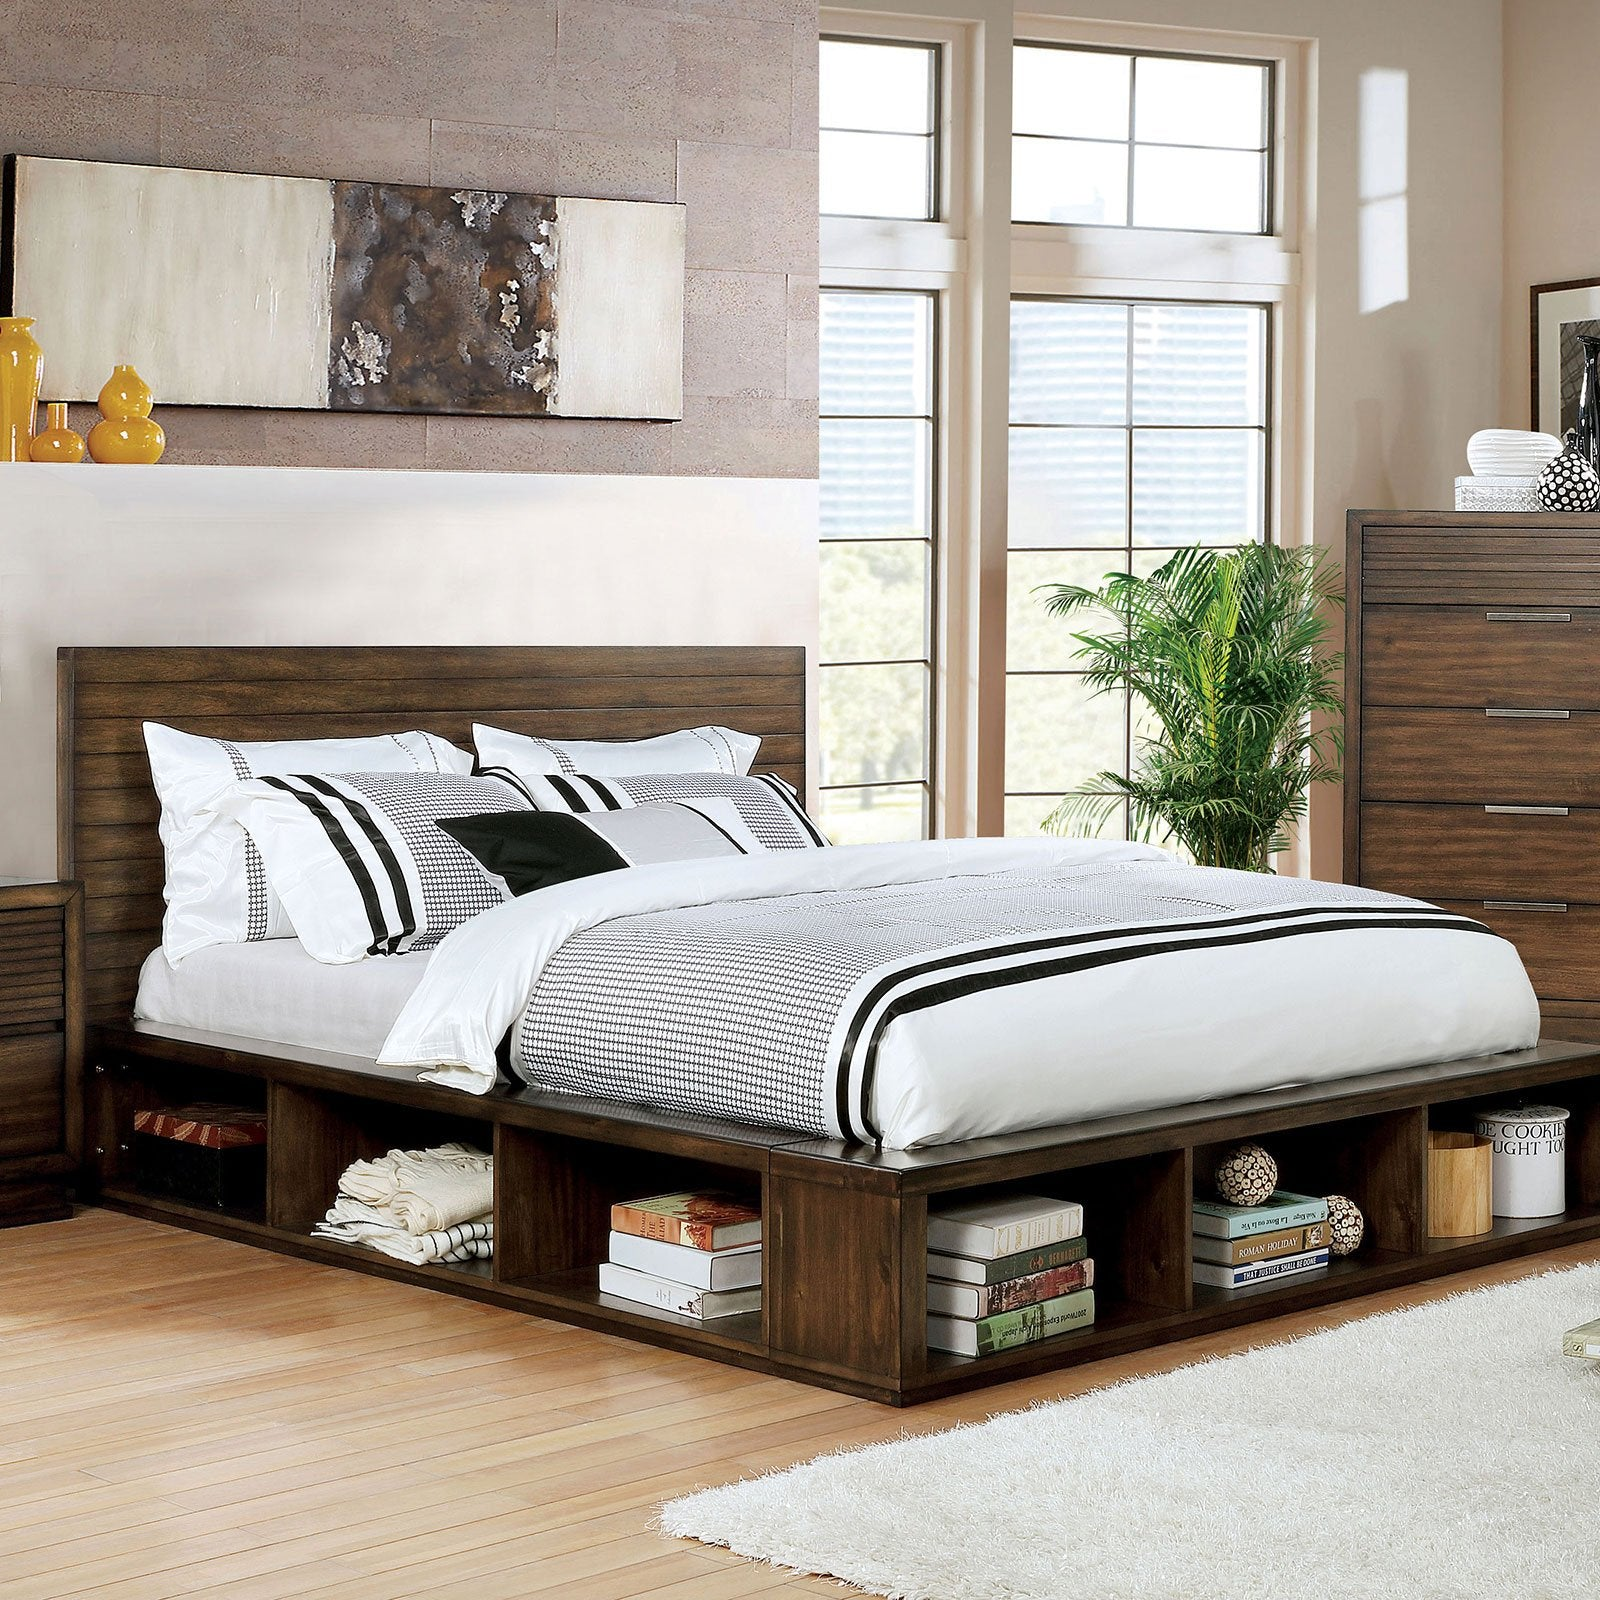 Tolna Rustic Queen Bed - InteriorDesignsToGo.com